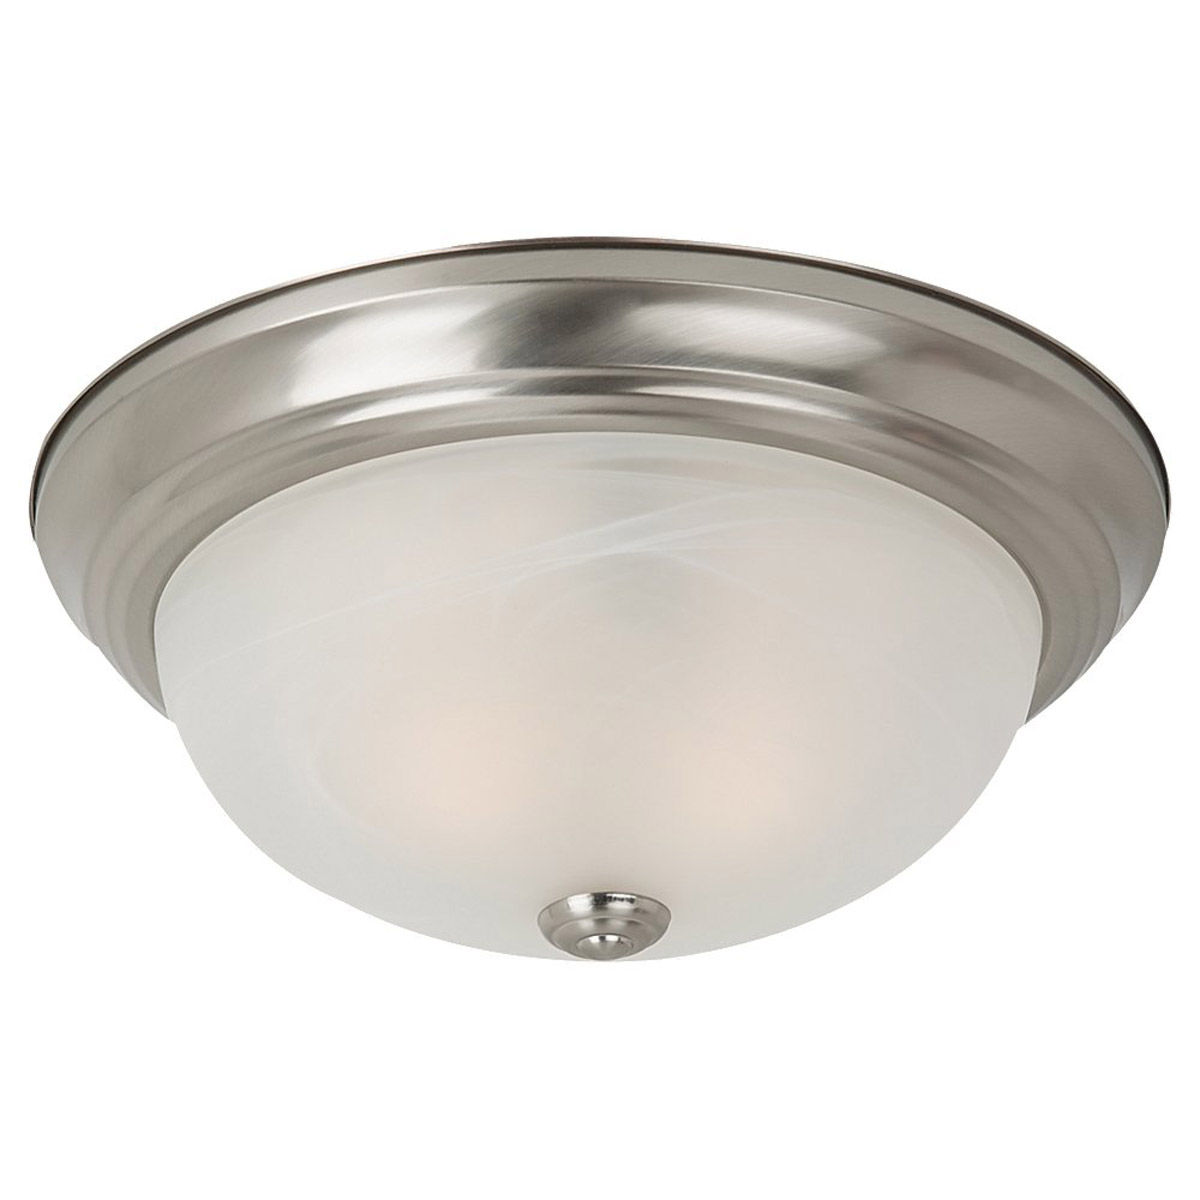 Sea Gull 75942BLE-962 Windgate 2 Light 13 inch Brushed Nickel Flush Mount Ceiling Light in Fluorescent photo